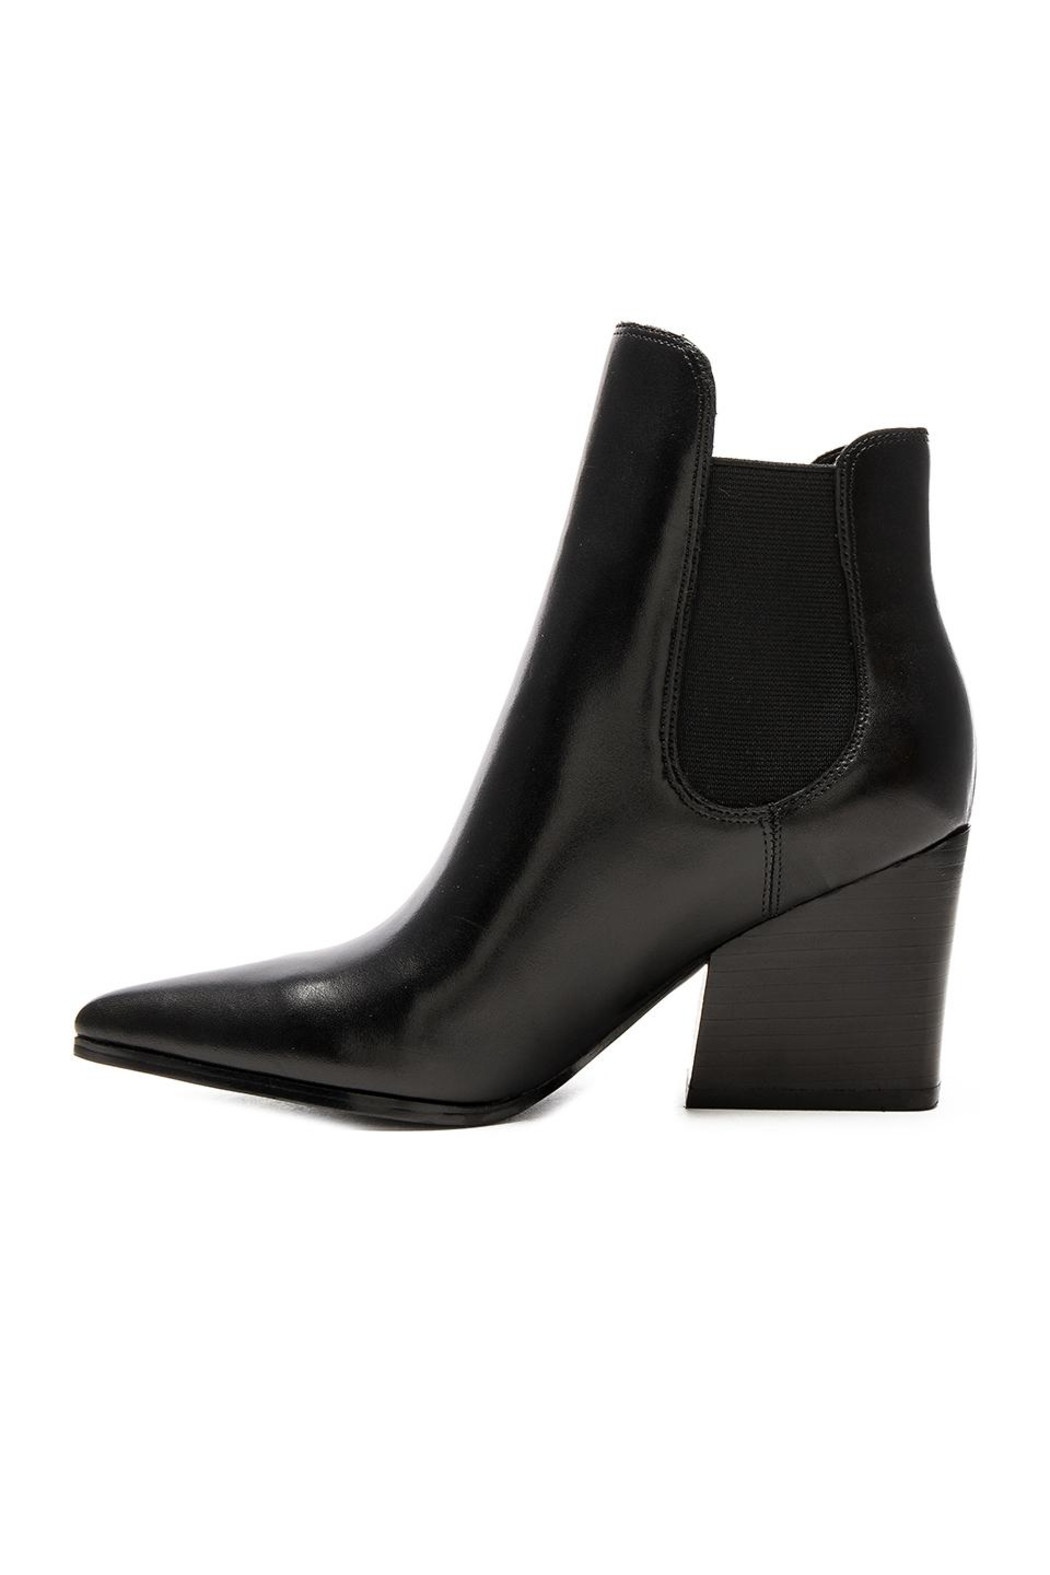 Kendall + Kylie Finley Leather Bootie - Main Image